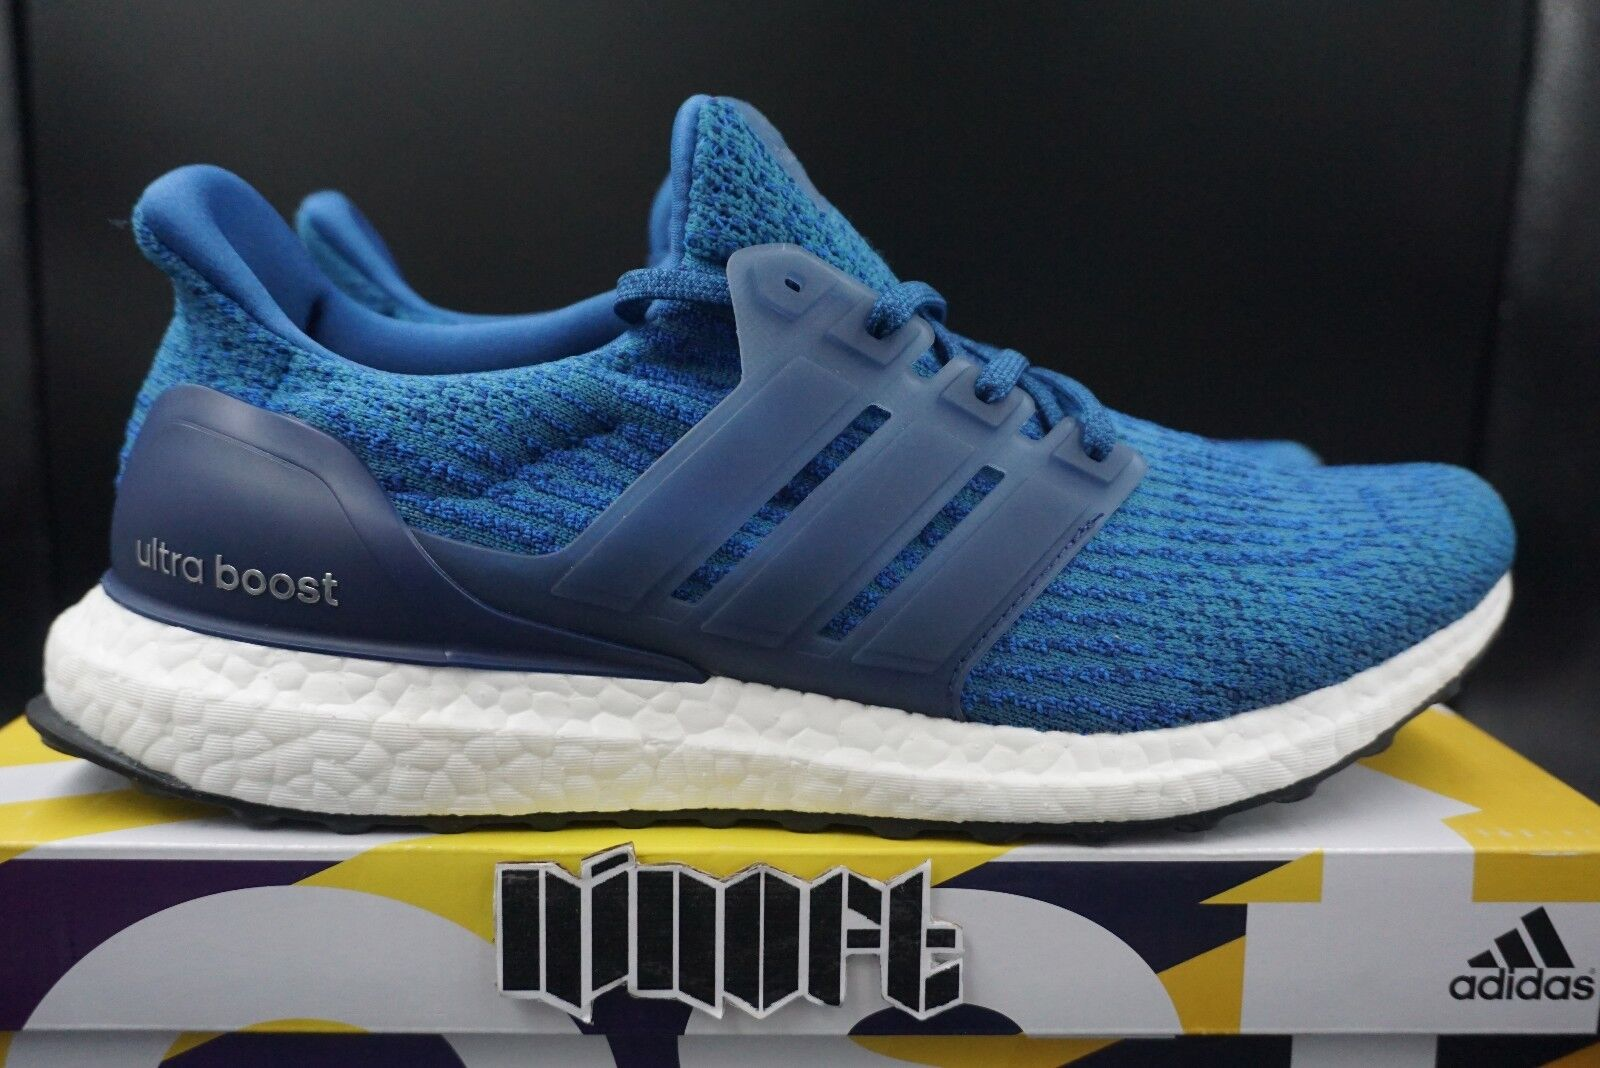 watch ea1ba 70cd5 Adidas Ultra Boost 3.0 Royal Mystery Bleu BA8844 new in box